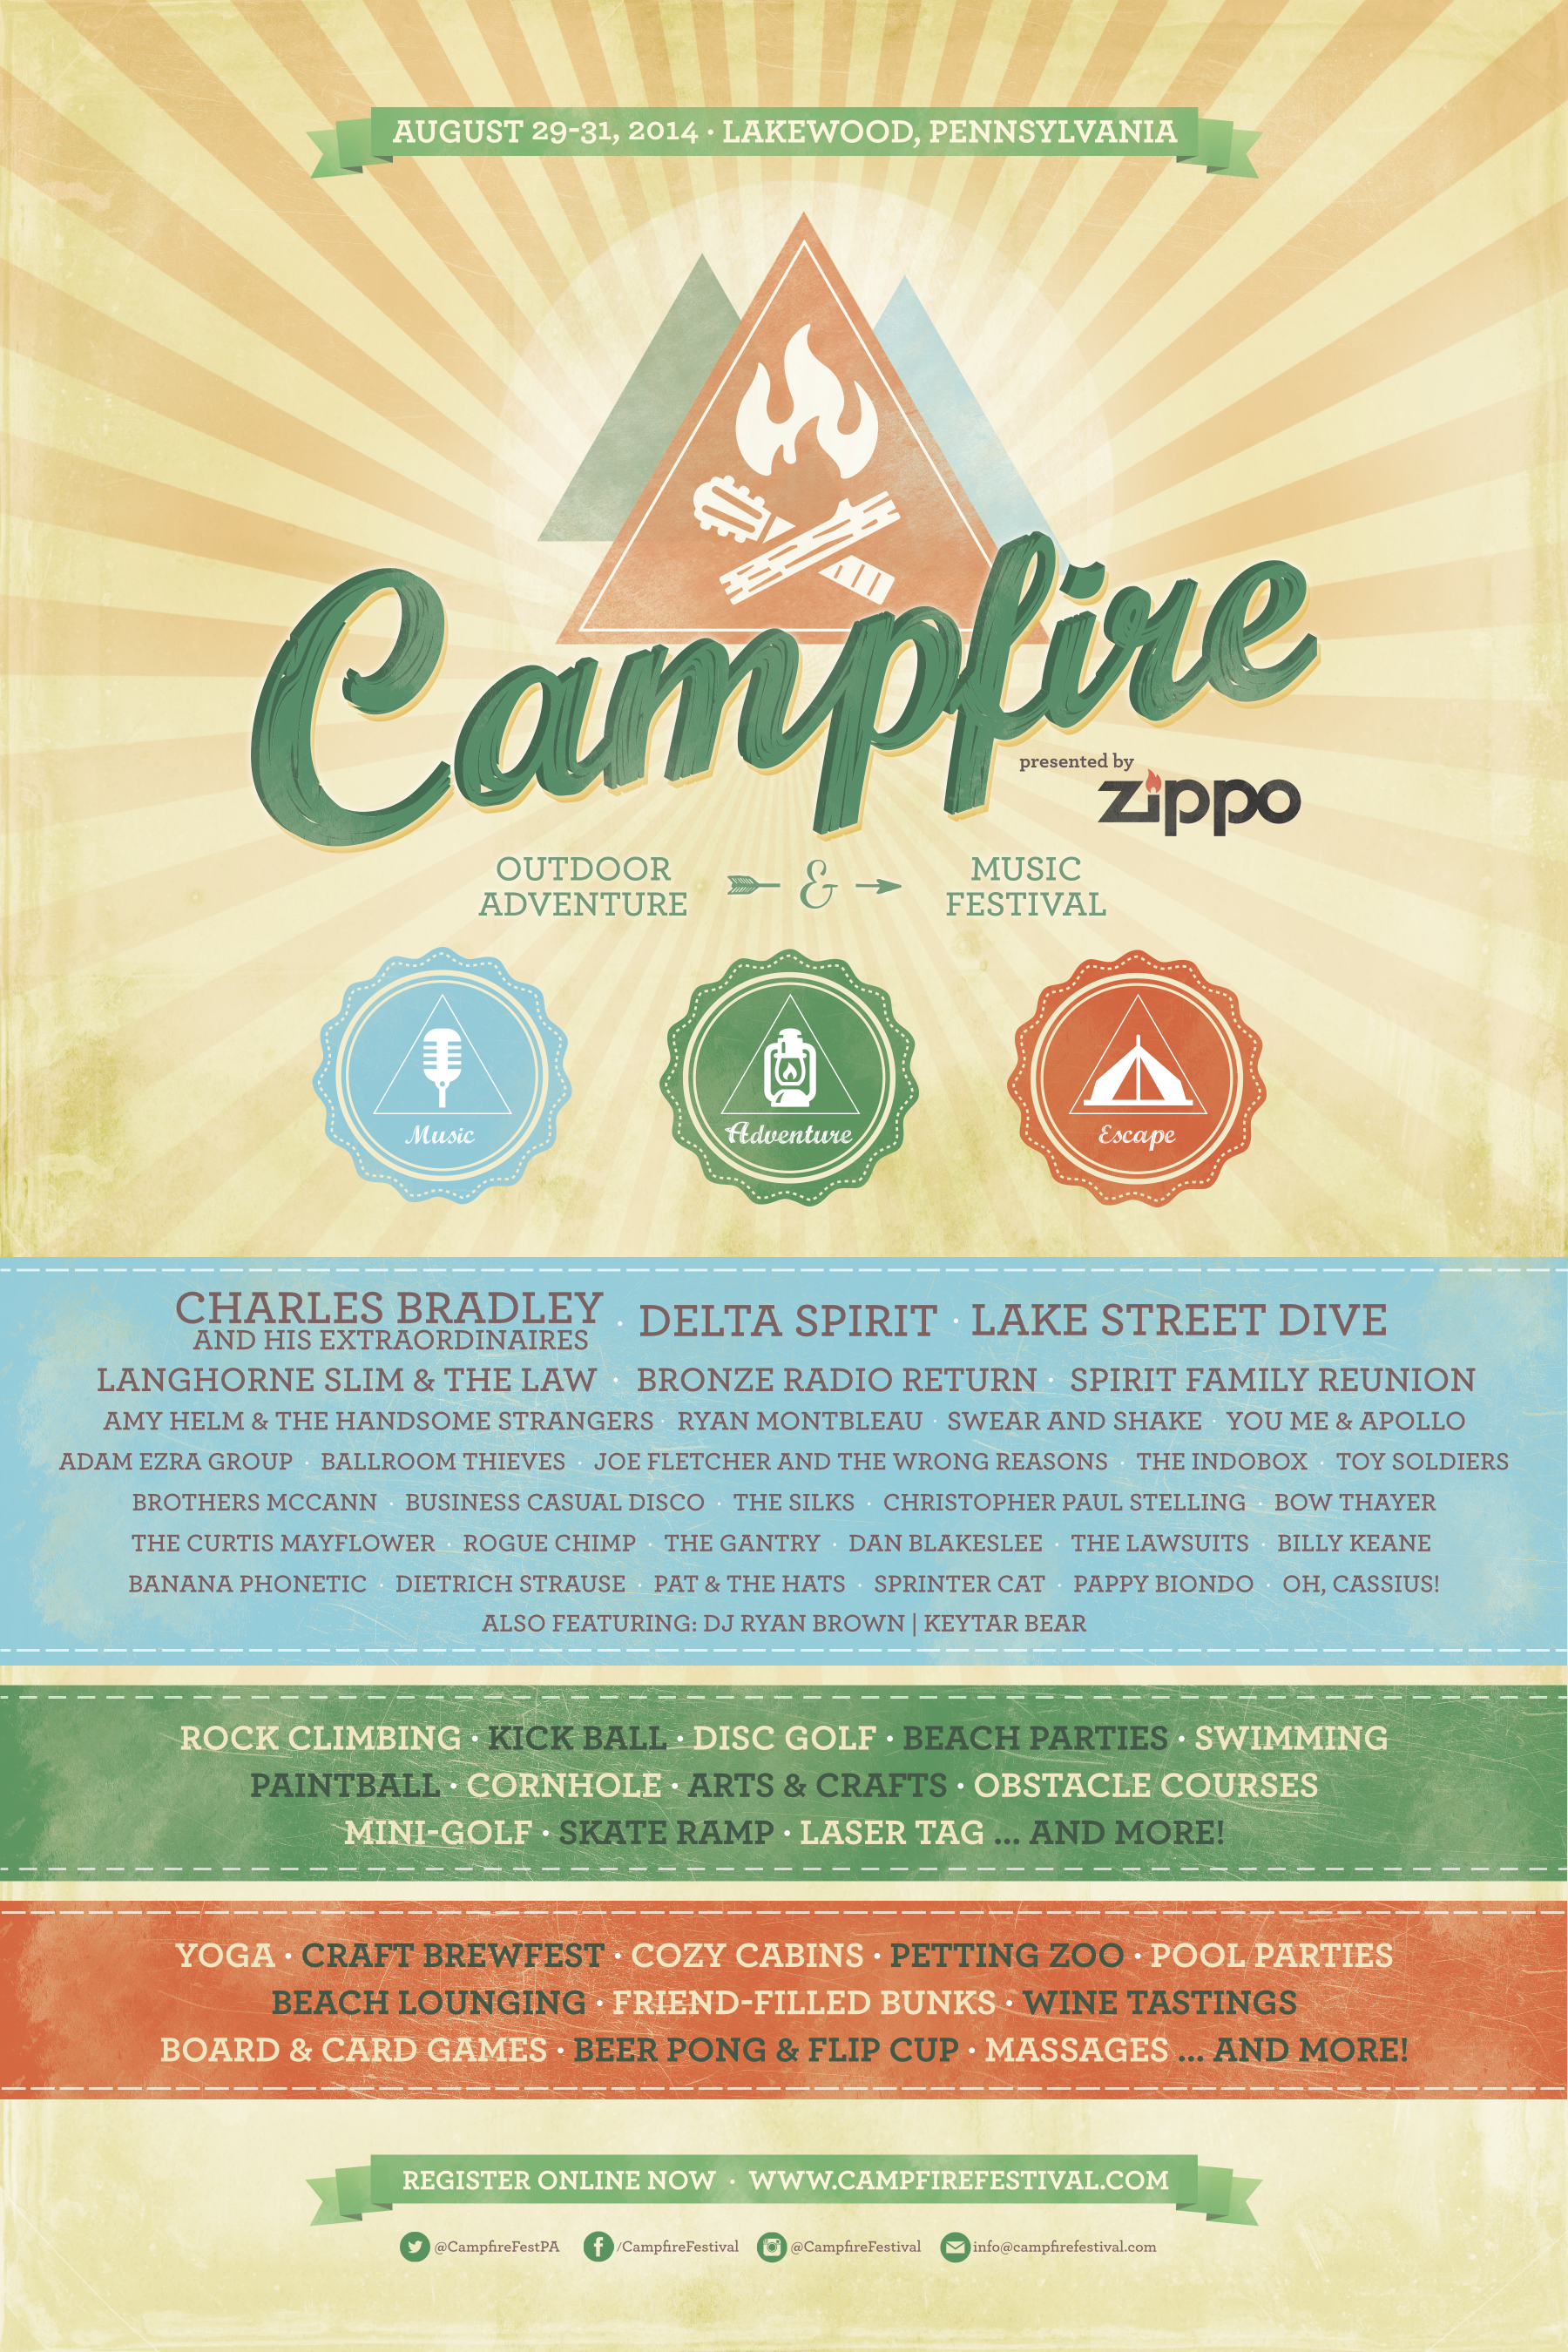 Campfire Outdoor Adventure and Music Festival Announces Fall Lineup